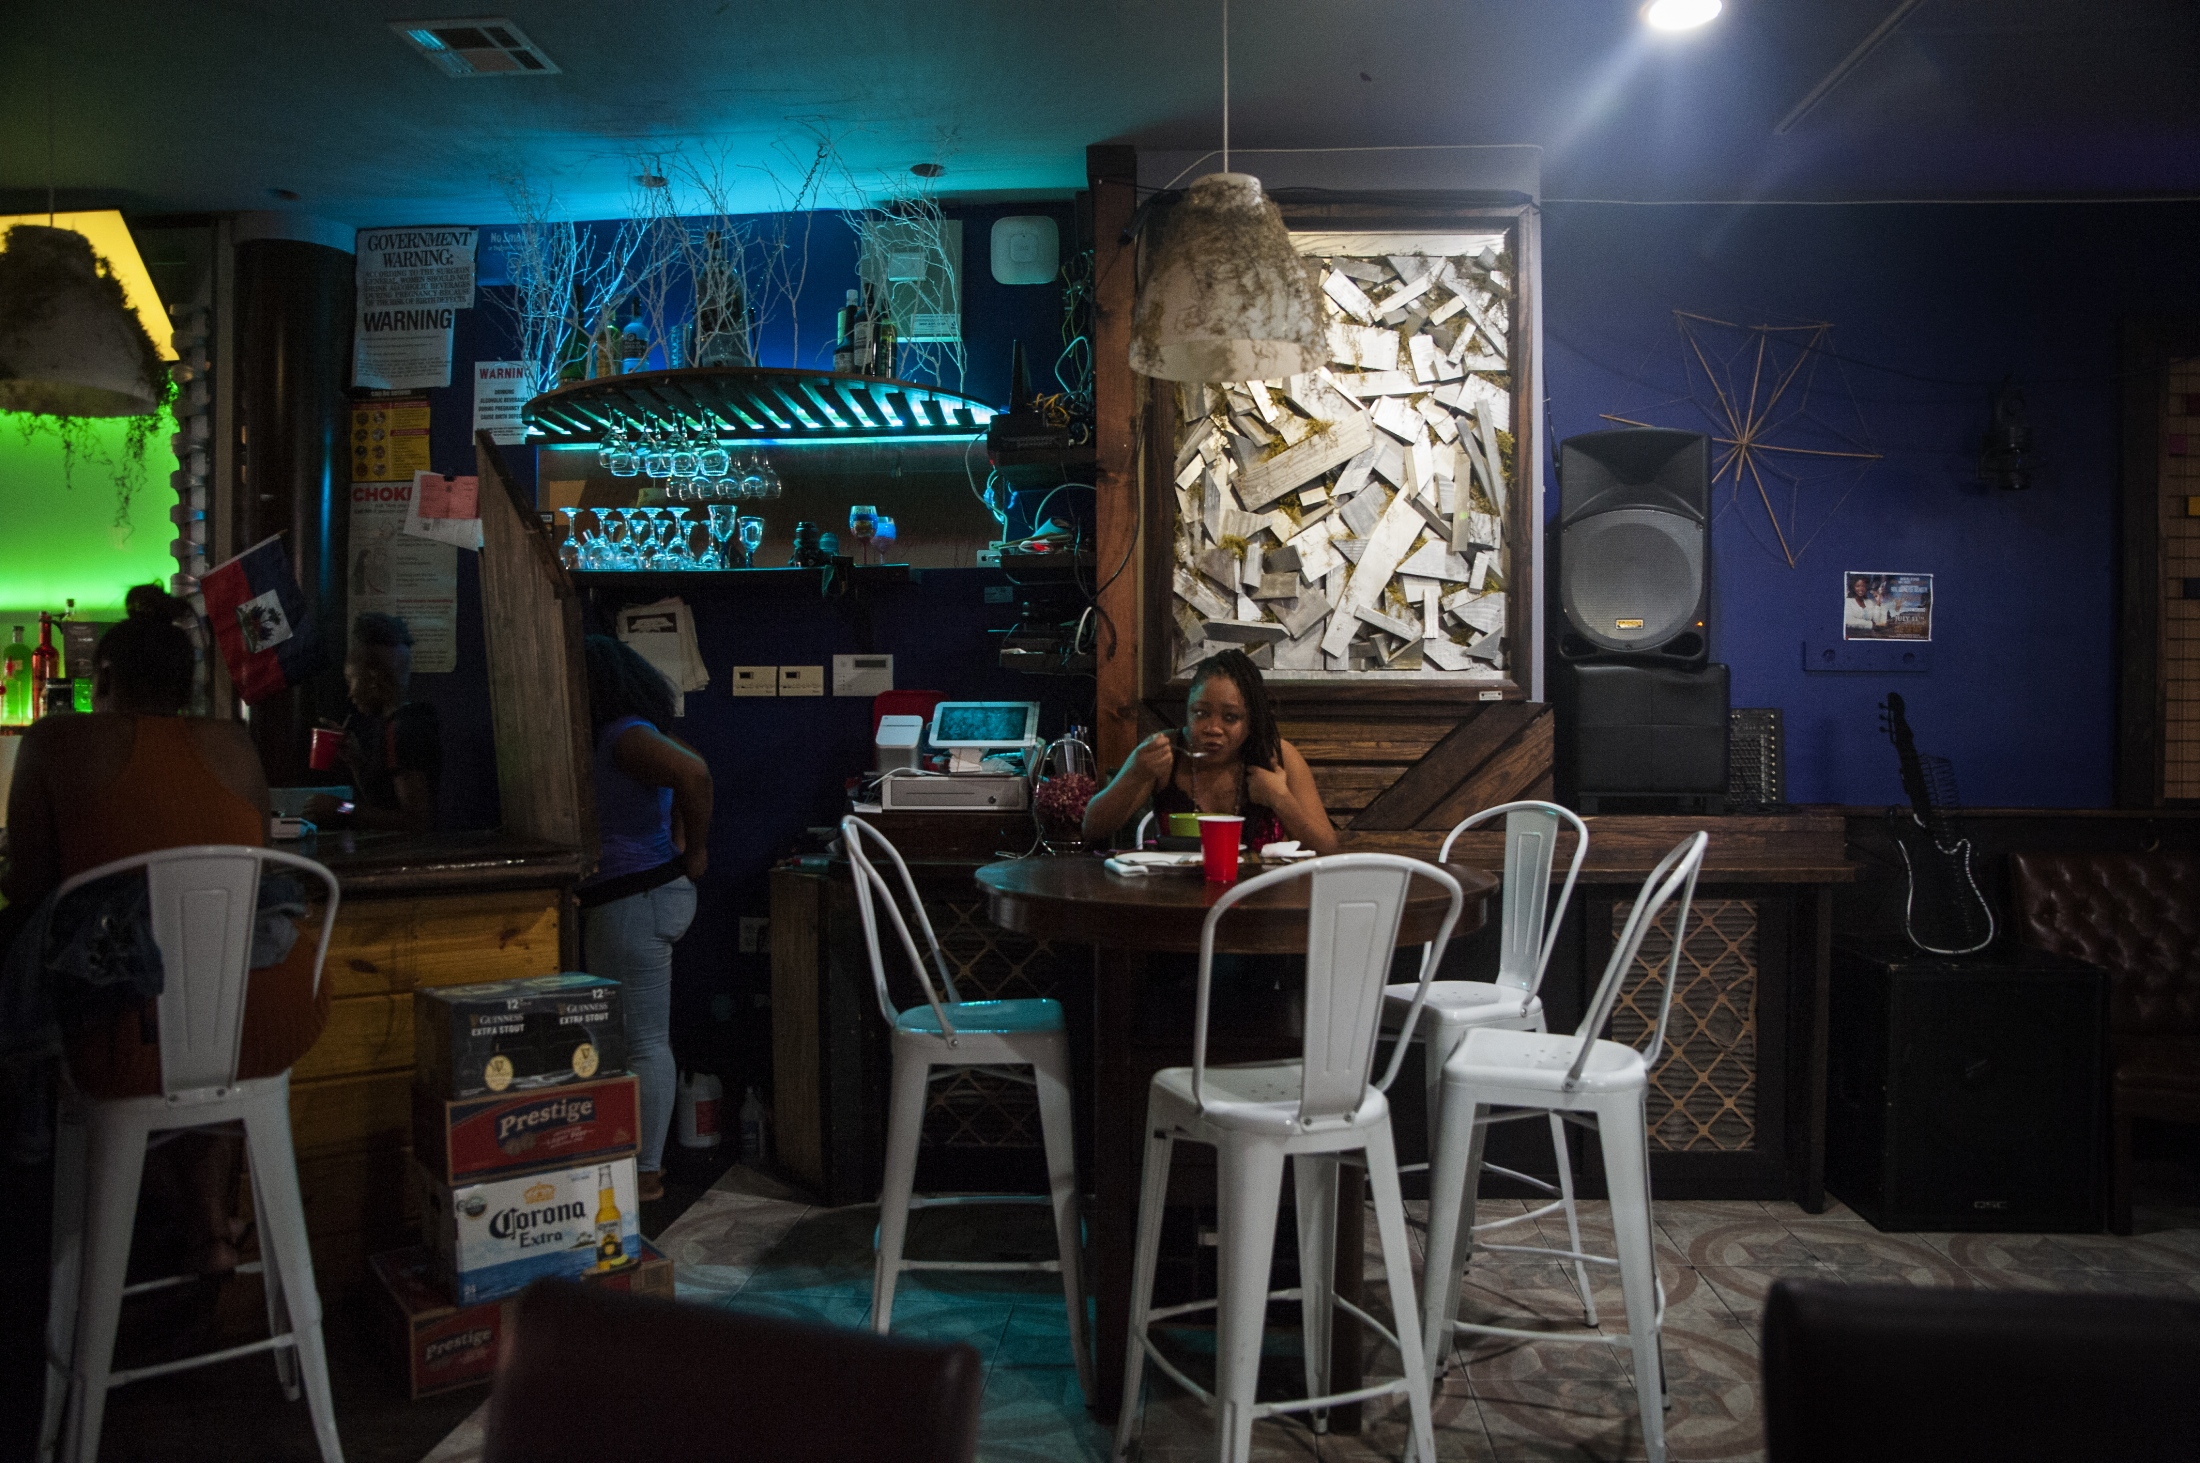 Inside the Tonel Restaurant & Lounge on Newkirk and Rogers in Flatbush, New York.